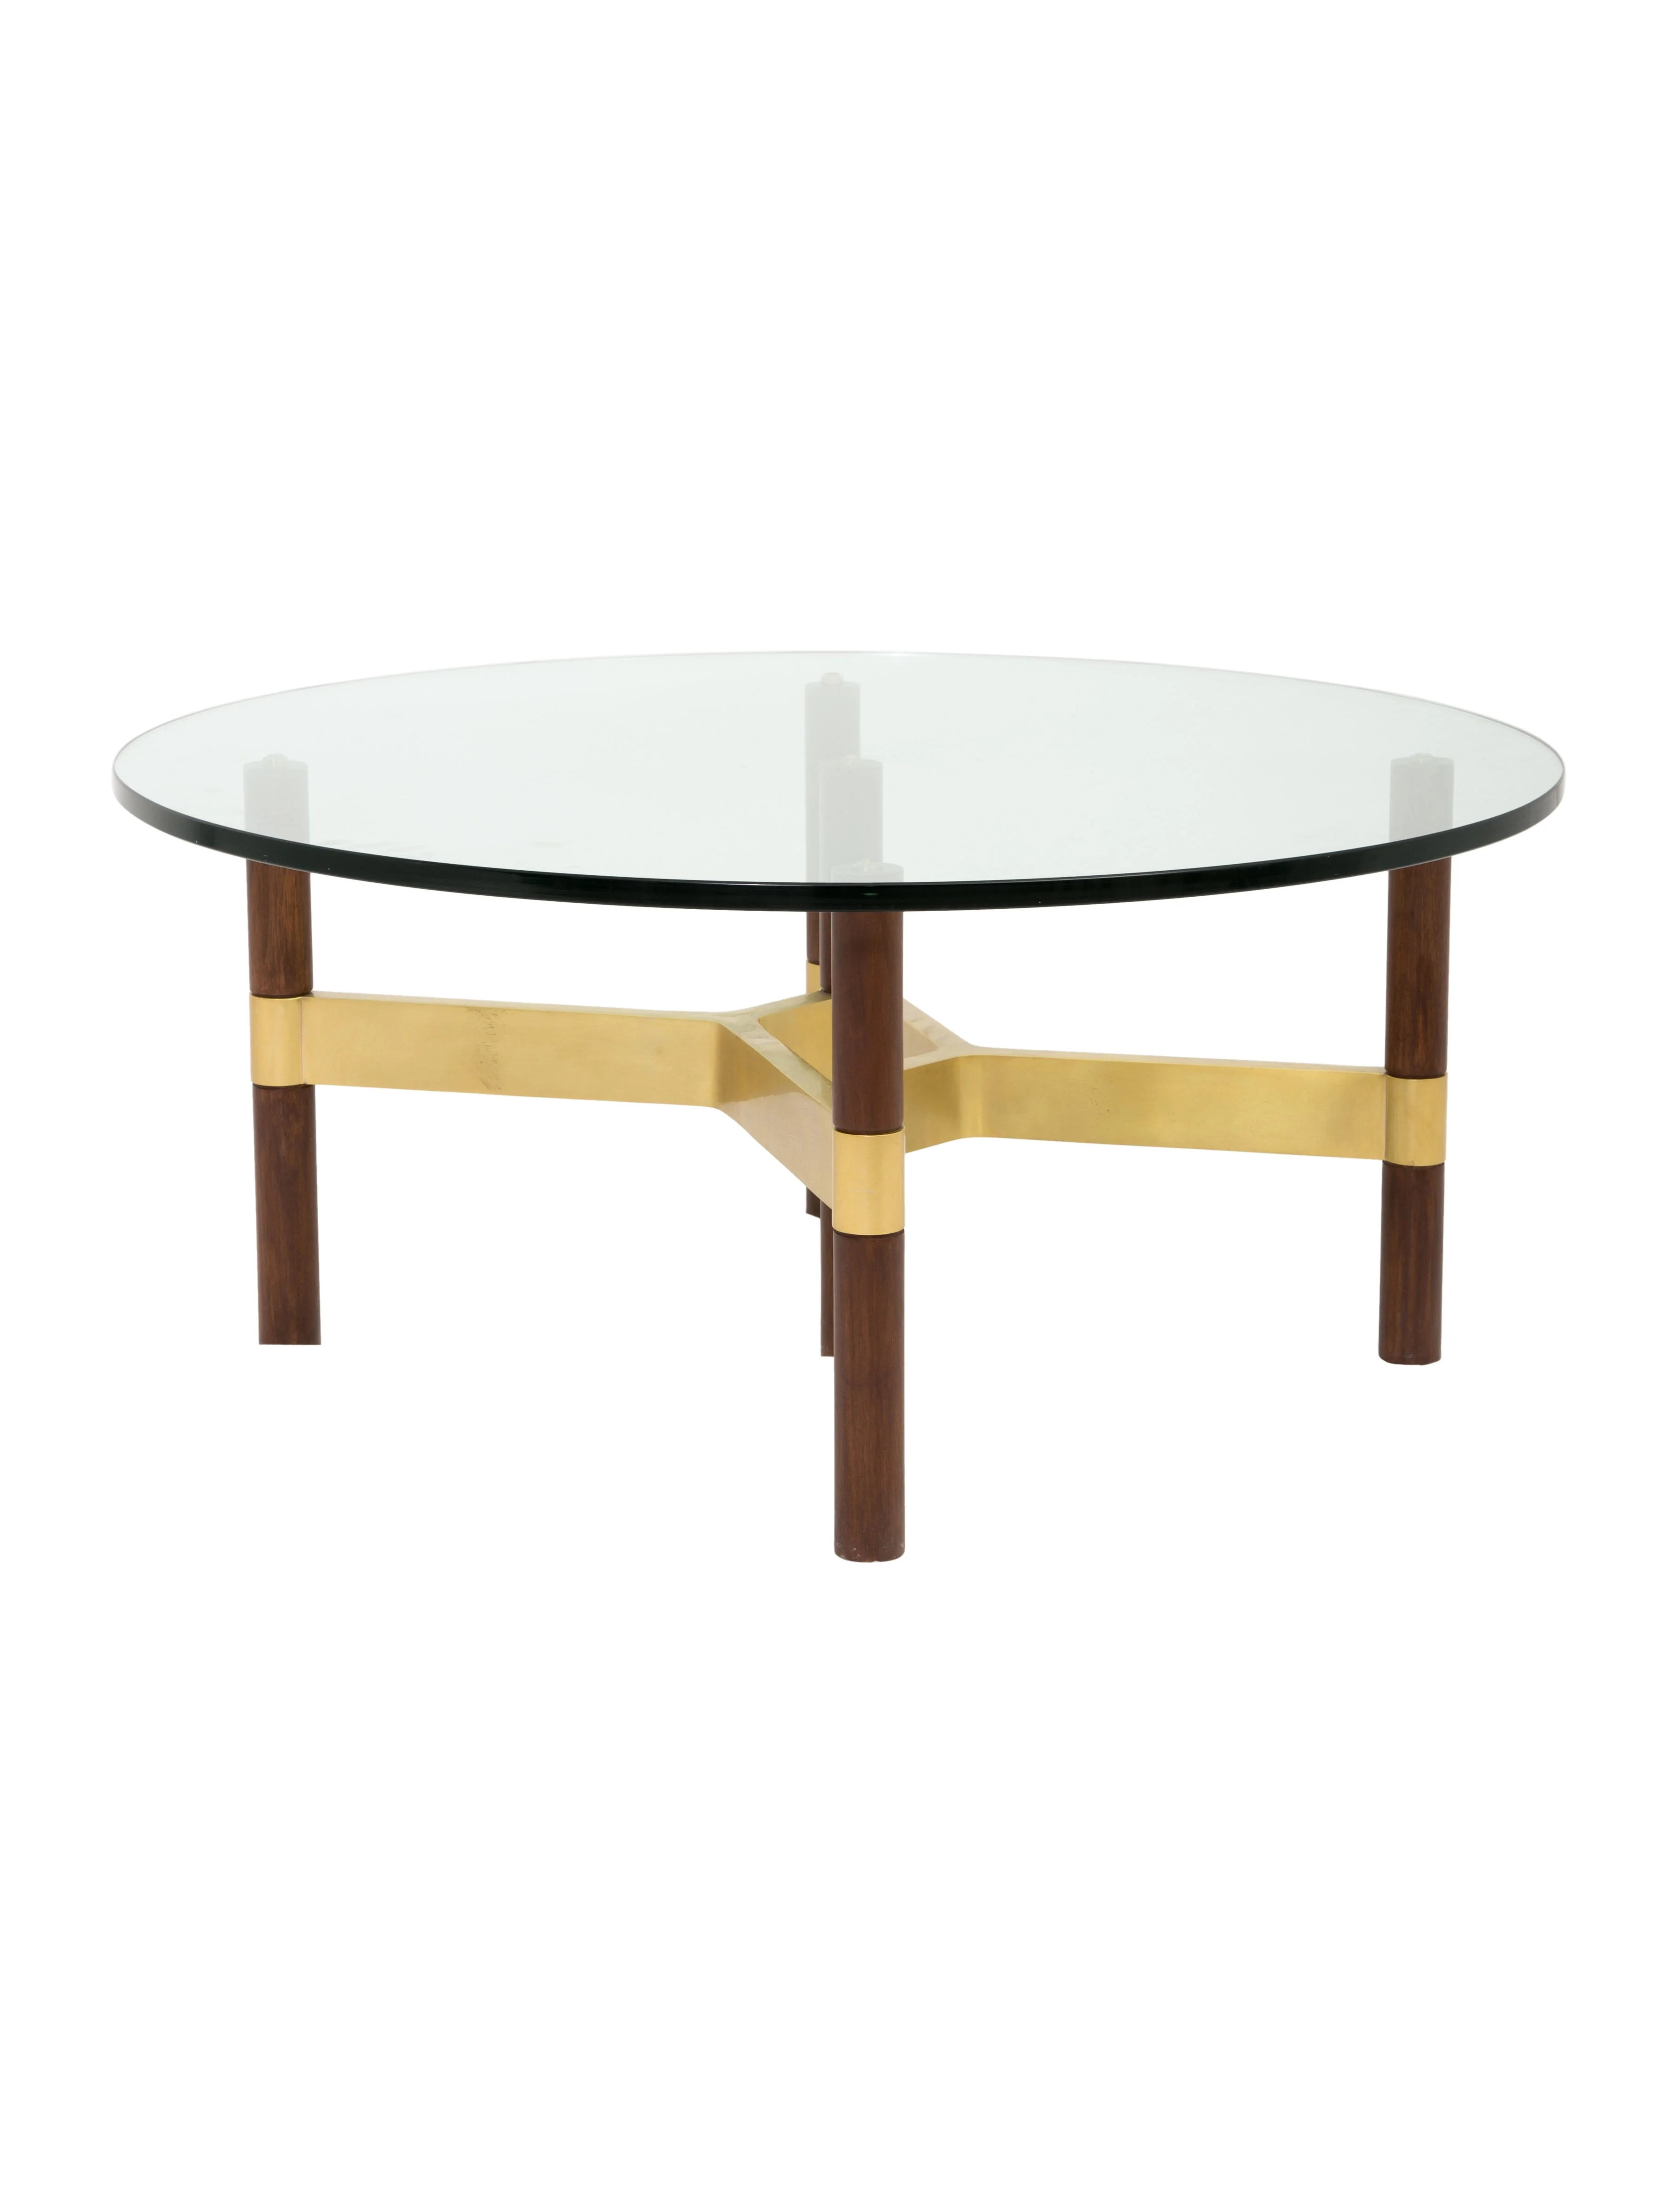 design within reach chair walnut wheel online price helix coffee table furniture